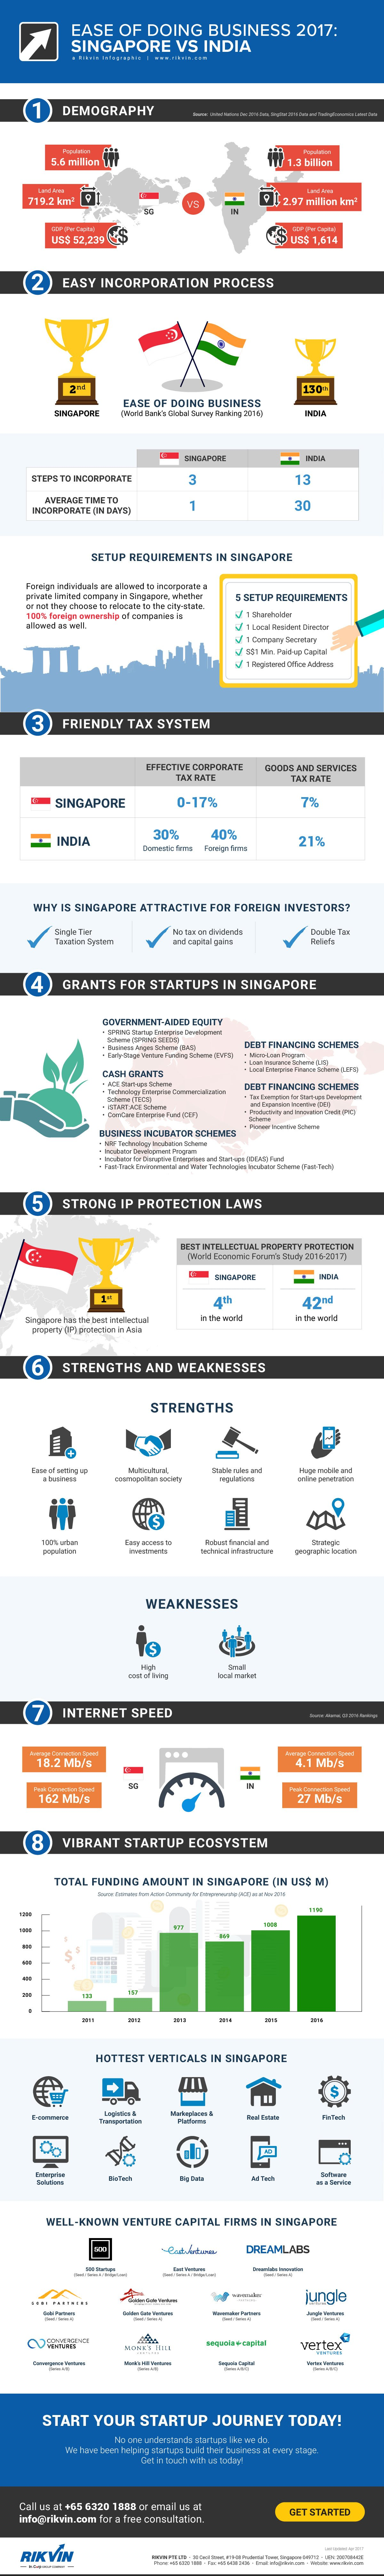 ease of business 2017 singapore-vs-india